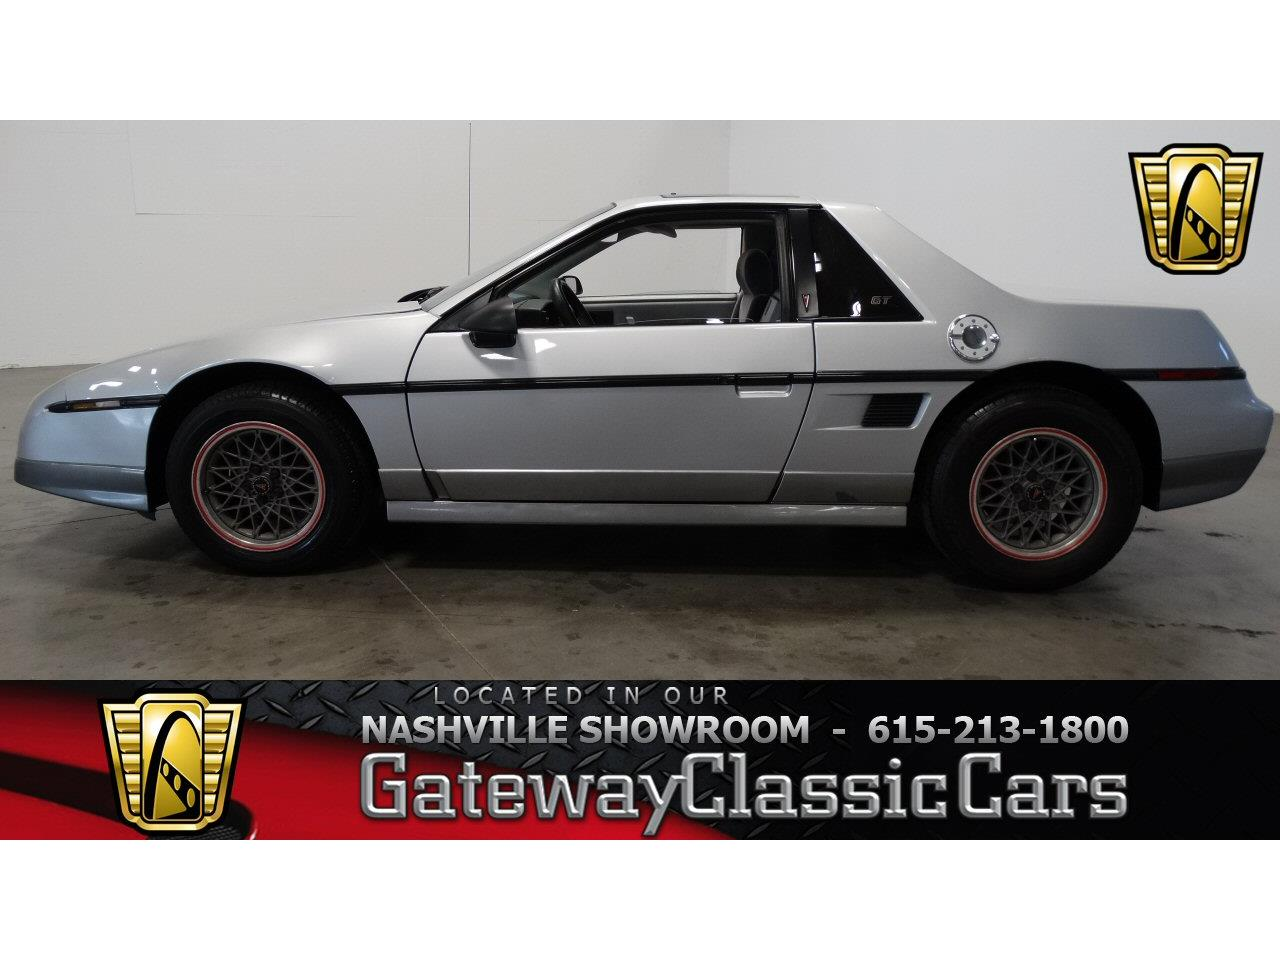 Large Picture of '85 Fiero - $6,995.00 Offered by Gateway Classic Cars - Nashville - KDWK